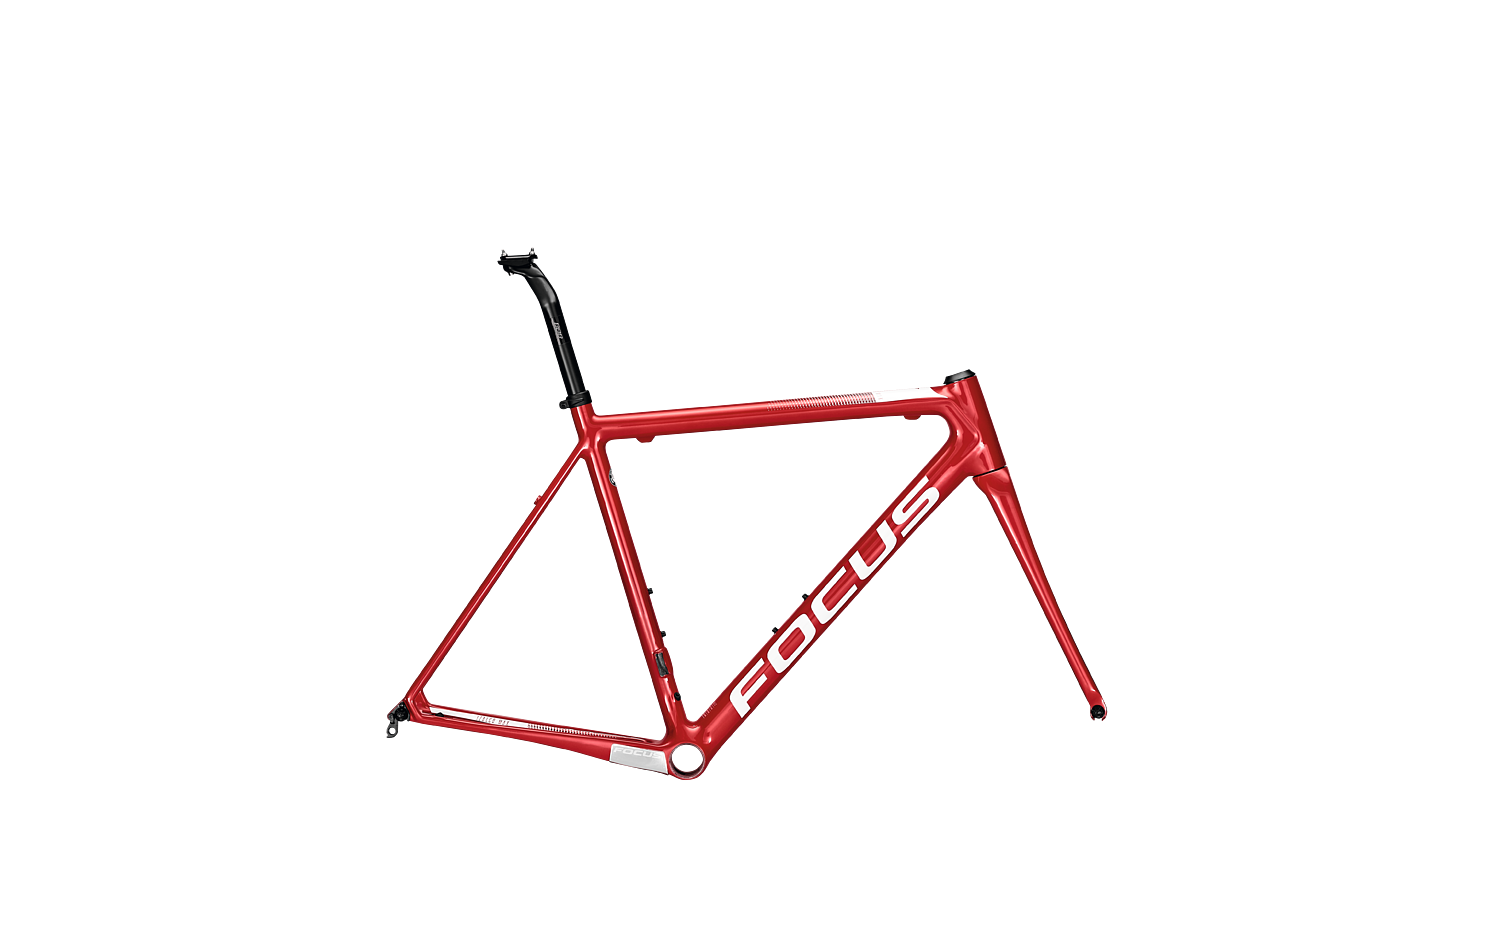 Focus Ram, Izalco Max 2019, Red